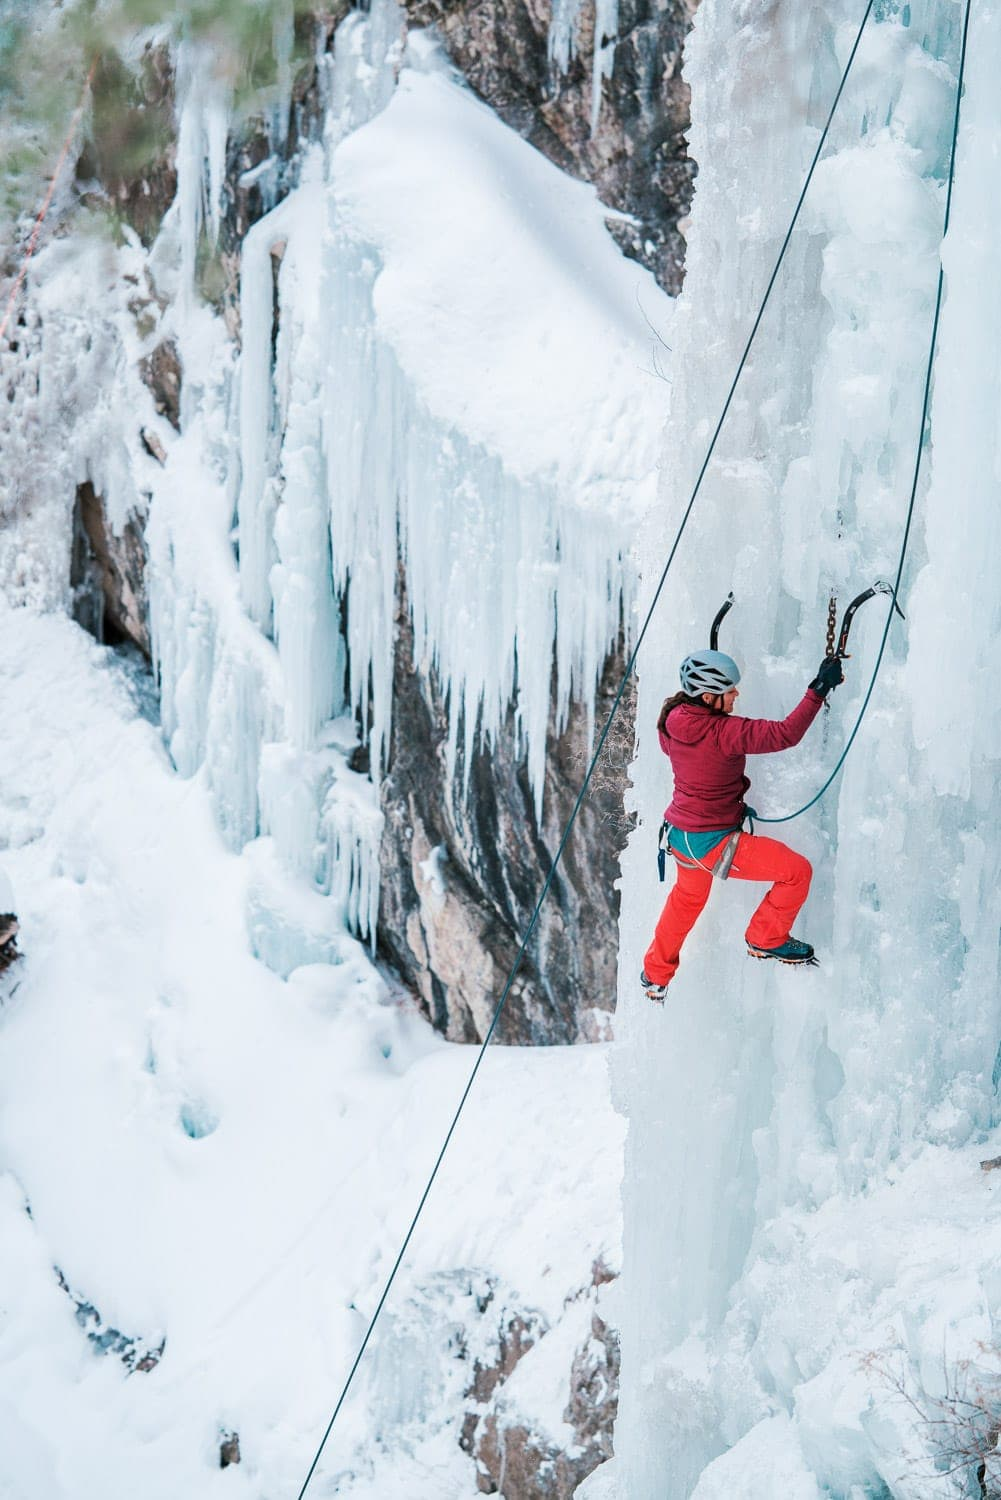 ice climbing in the Ouray Ice Park along the wall of the gorge